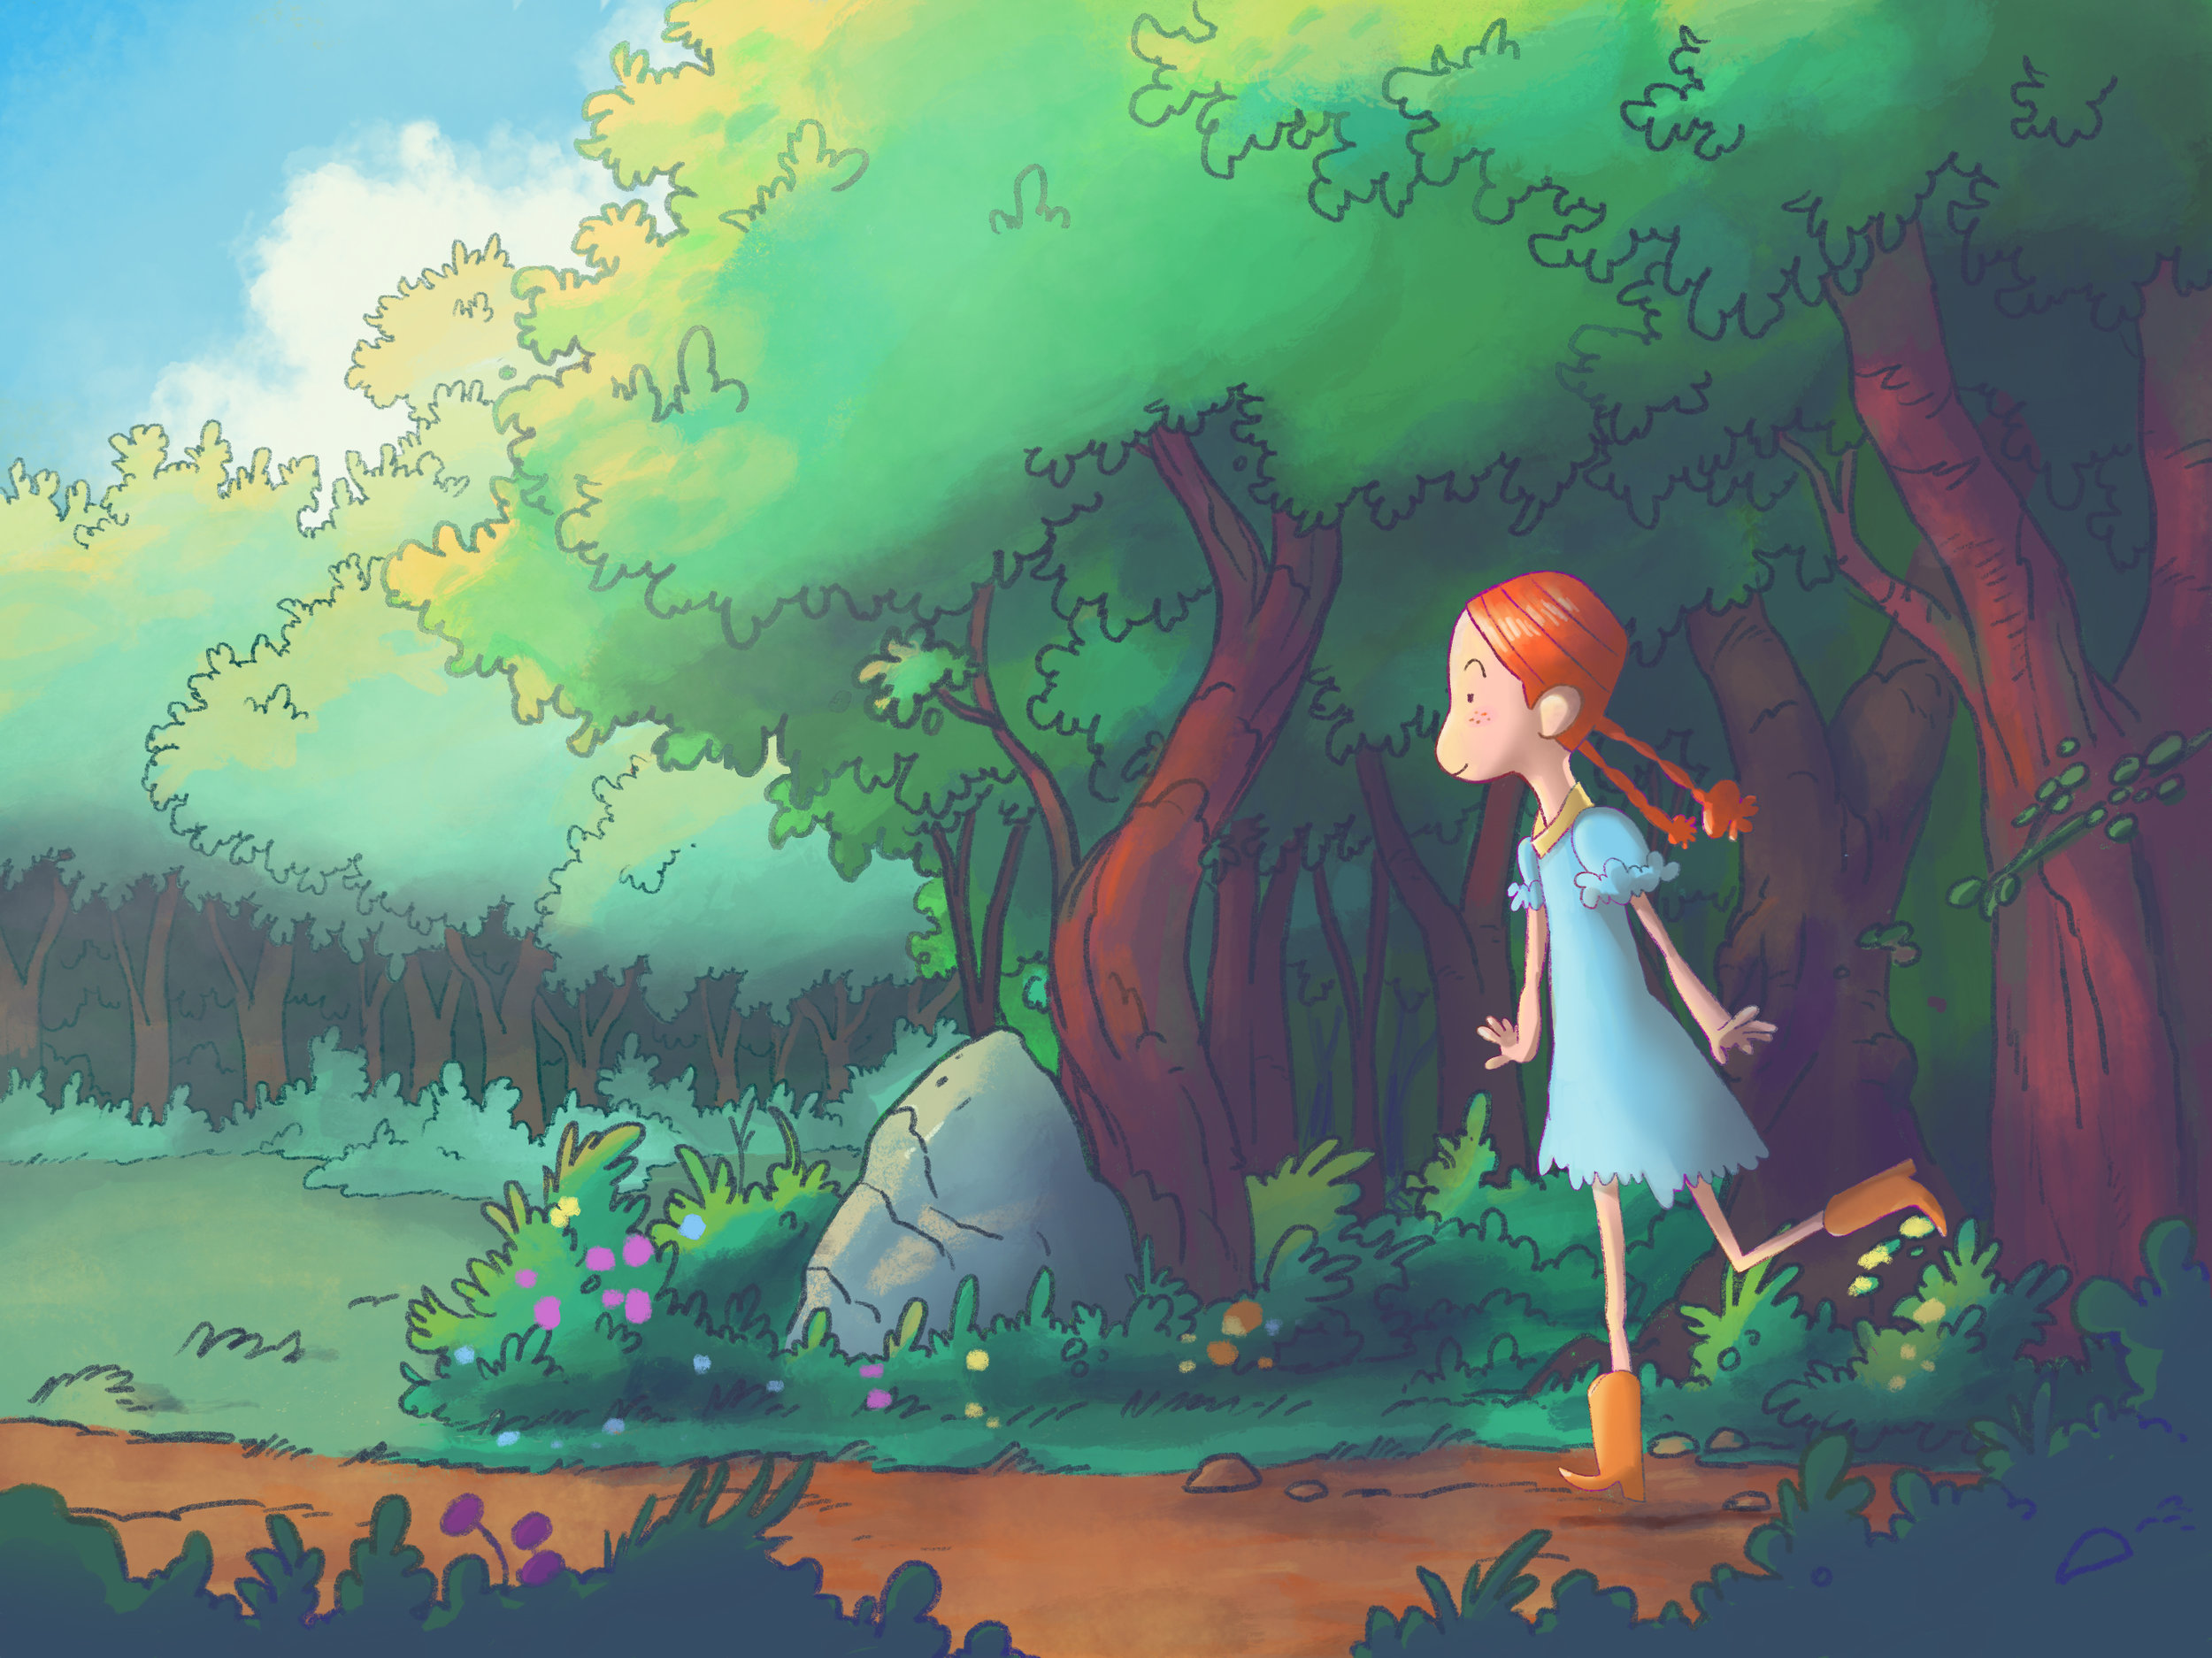 Pippi-color_v01-temp.jpg